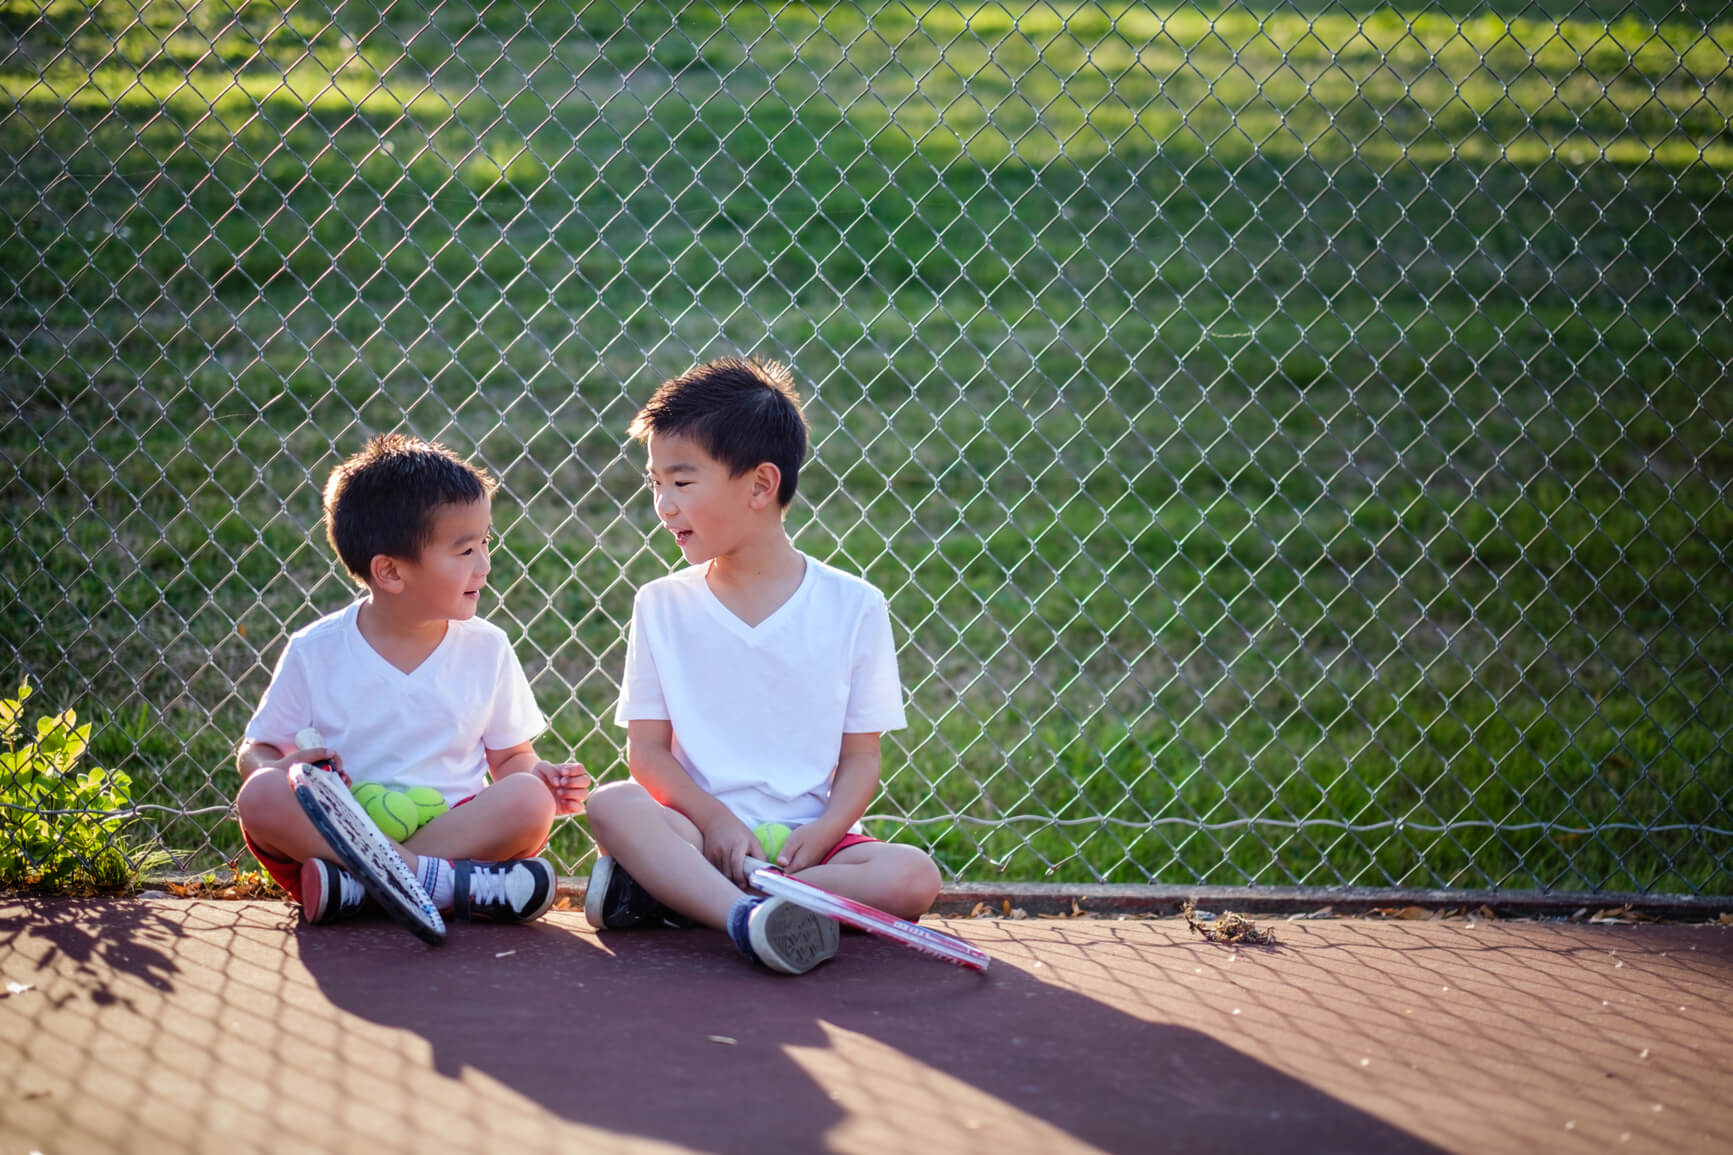 The benefits of getting kids involved in sports early on